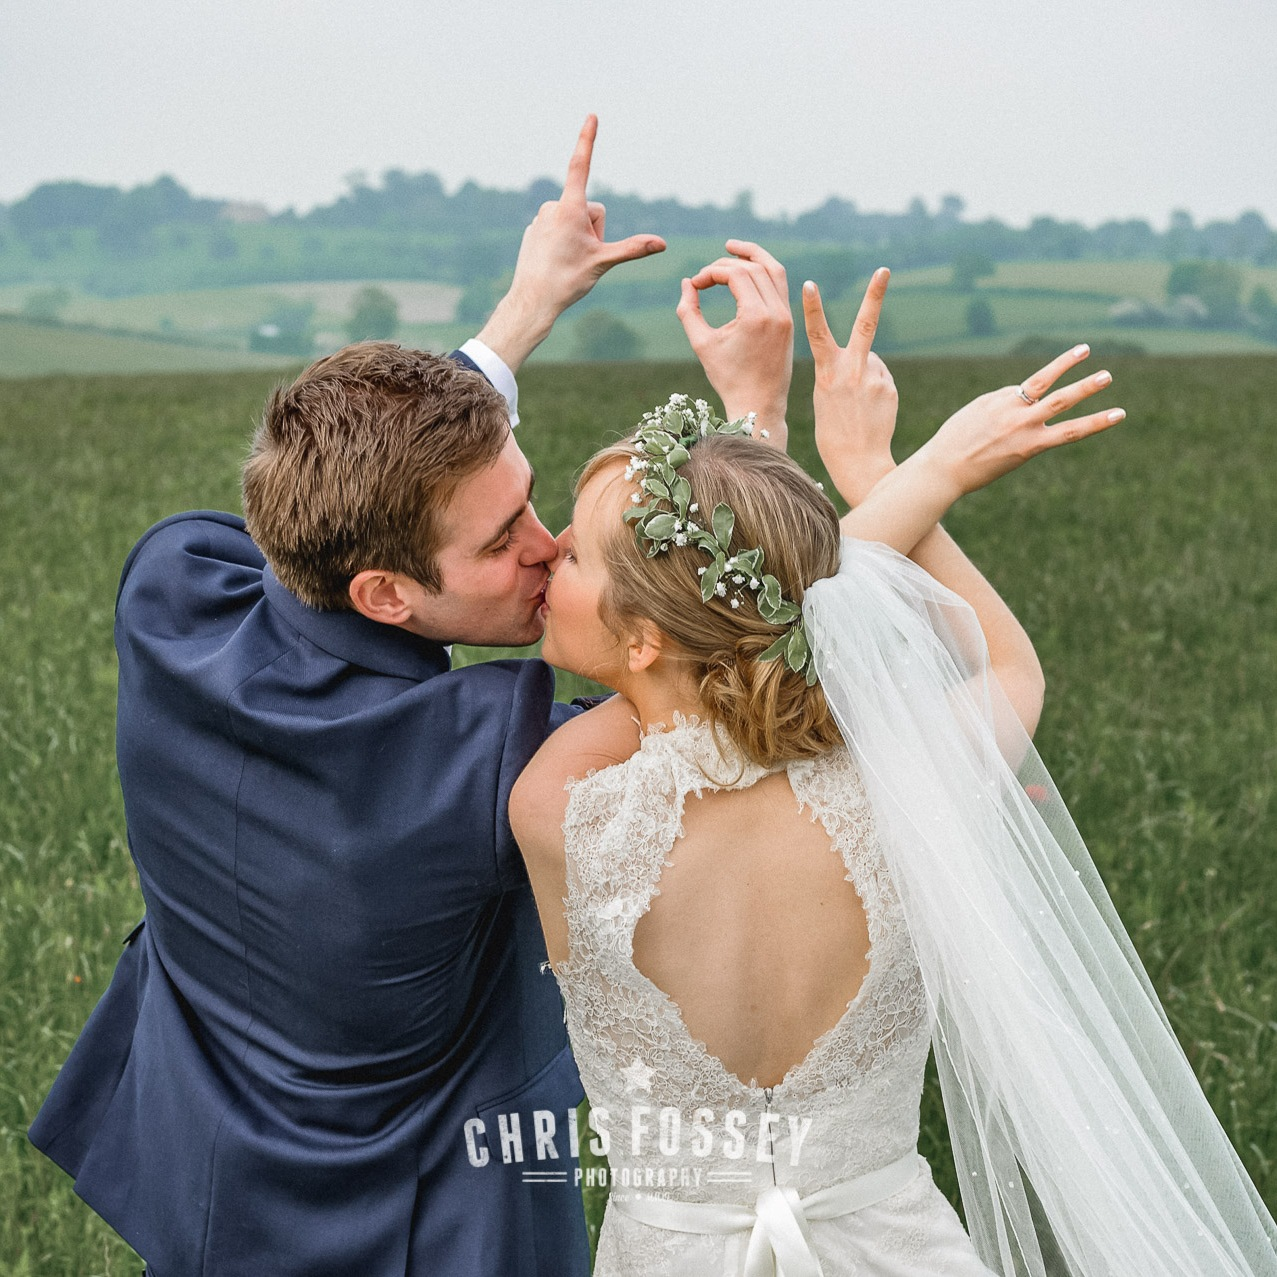 Warwickshire Wedding Photography Portfolio-Northamptonshire Wedding Photography Skylark Hope Farm Daventry by Chris Fossey Photography 1-182